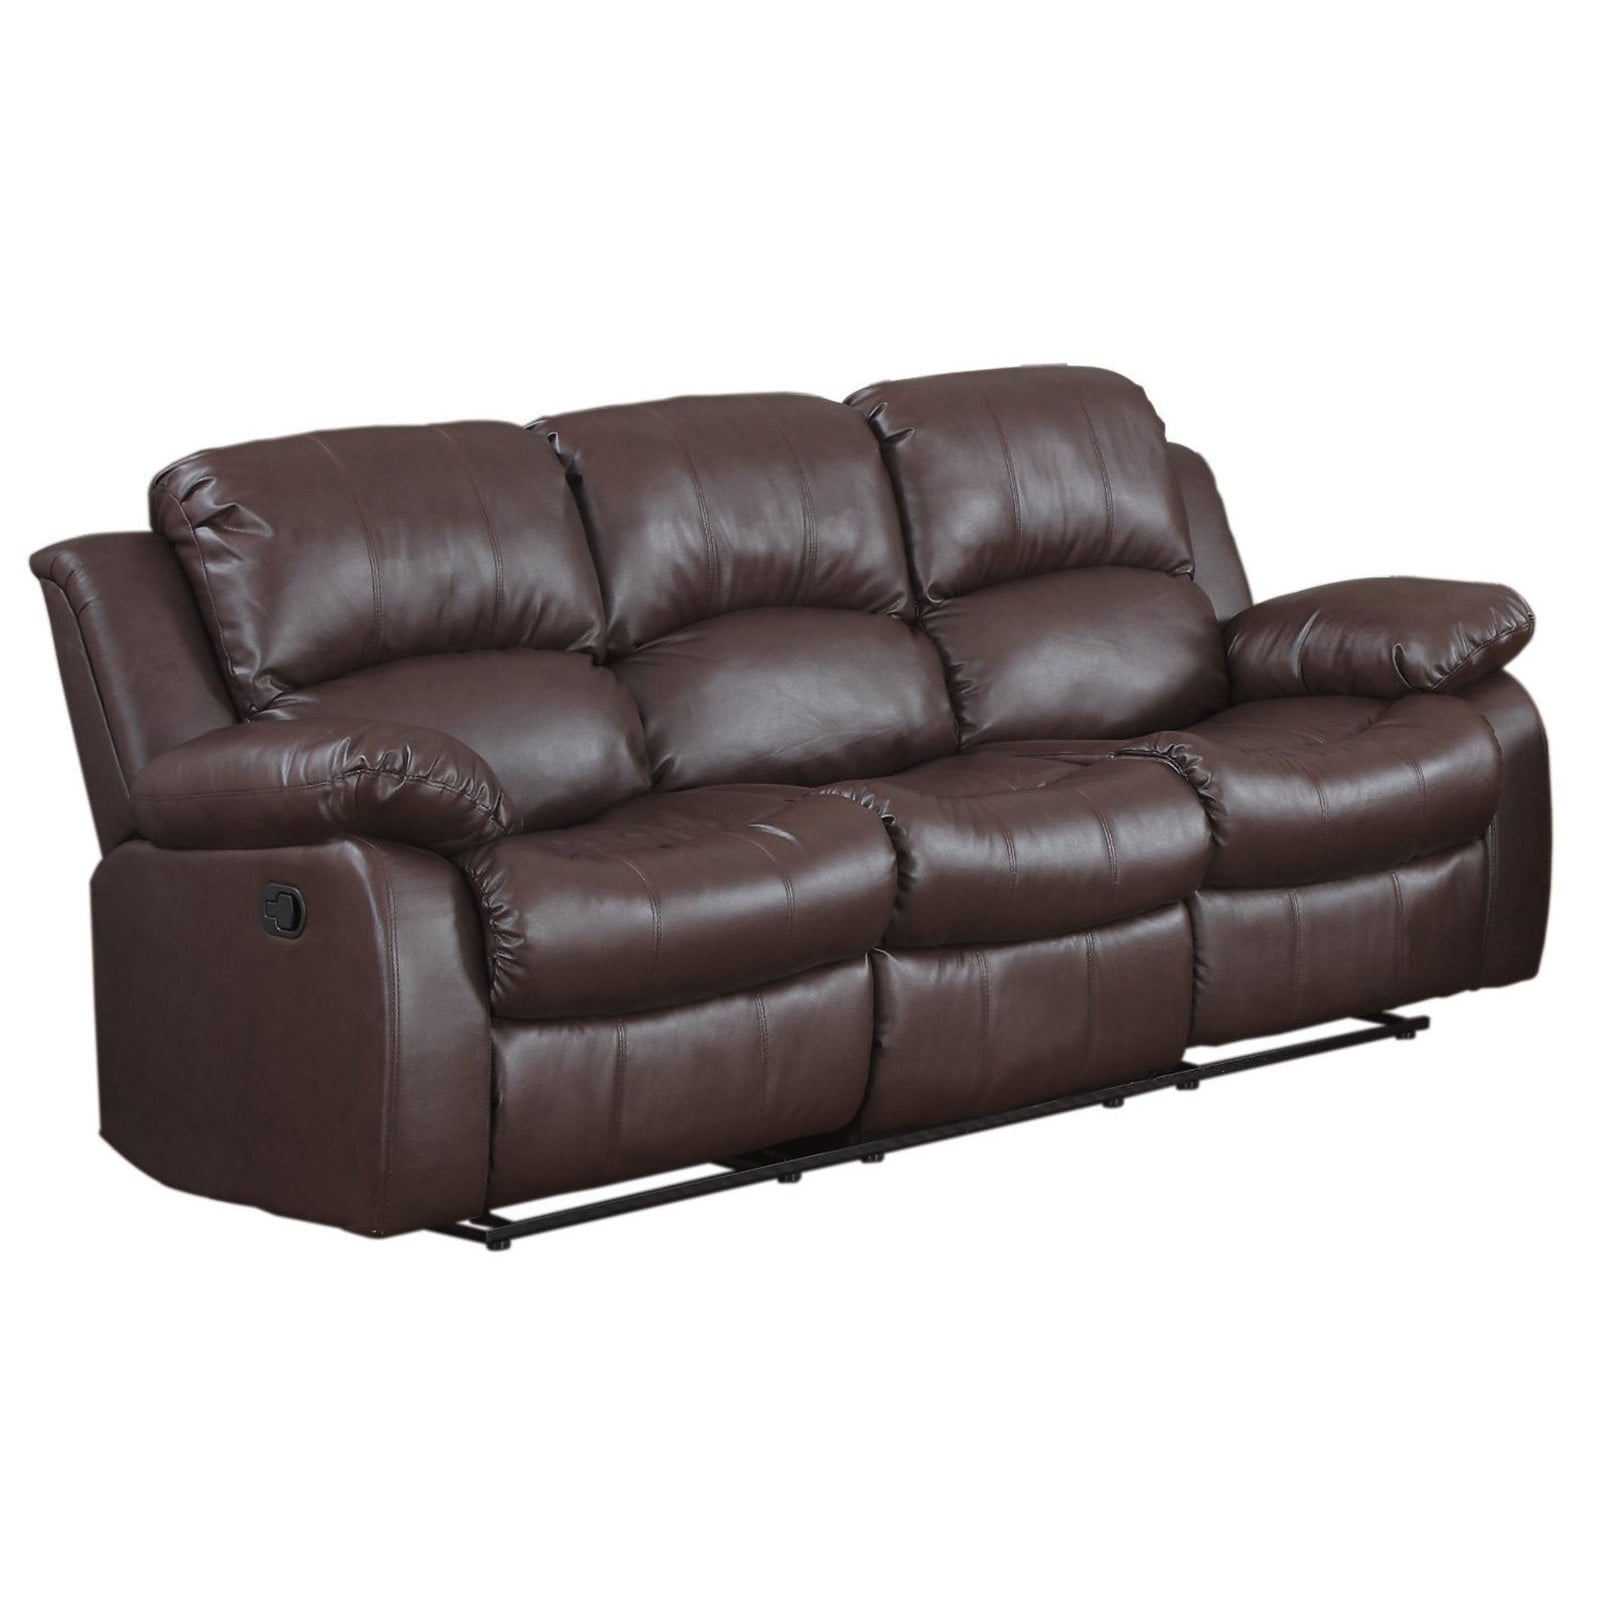 Shop Classic Oversize and Overstuffed 3 Seat Bonded Leather Double ...